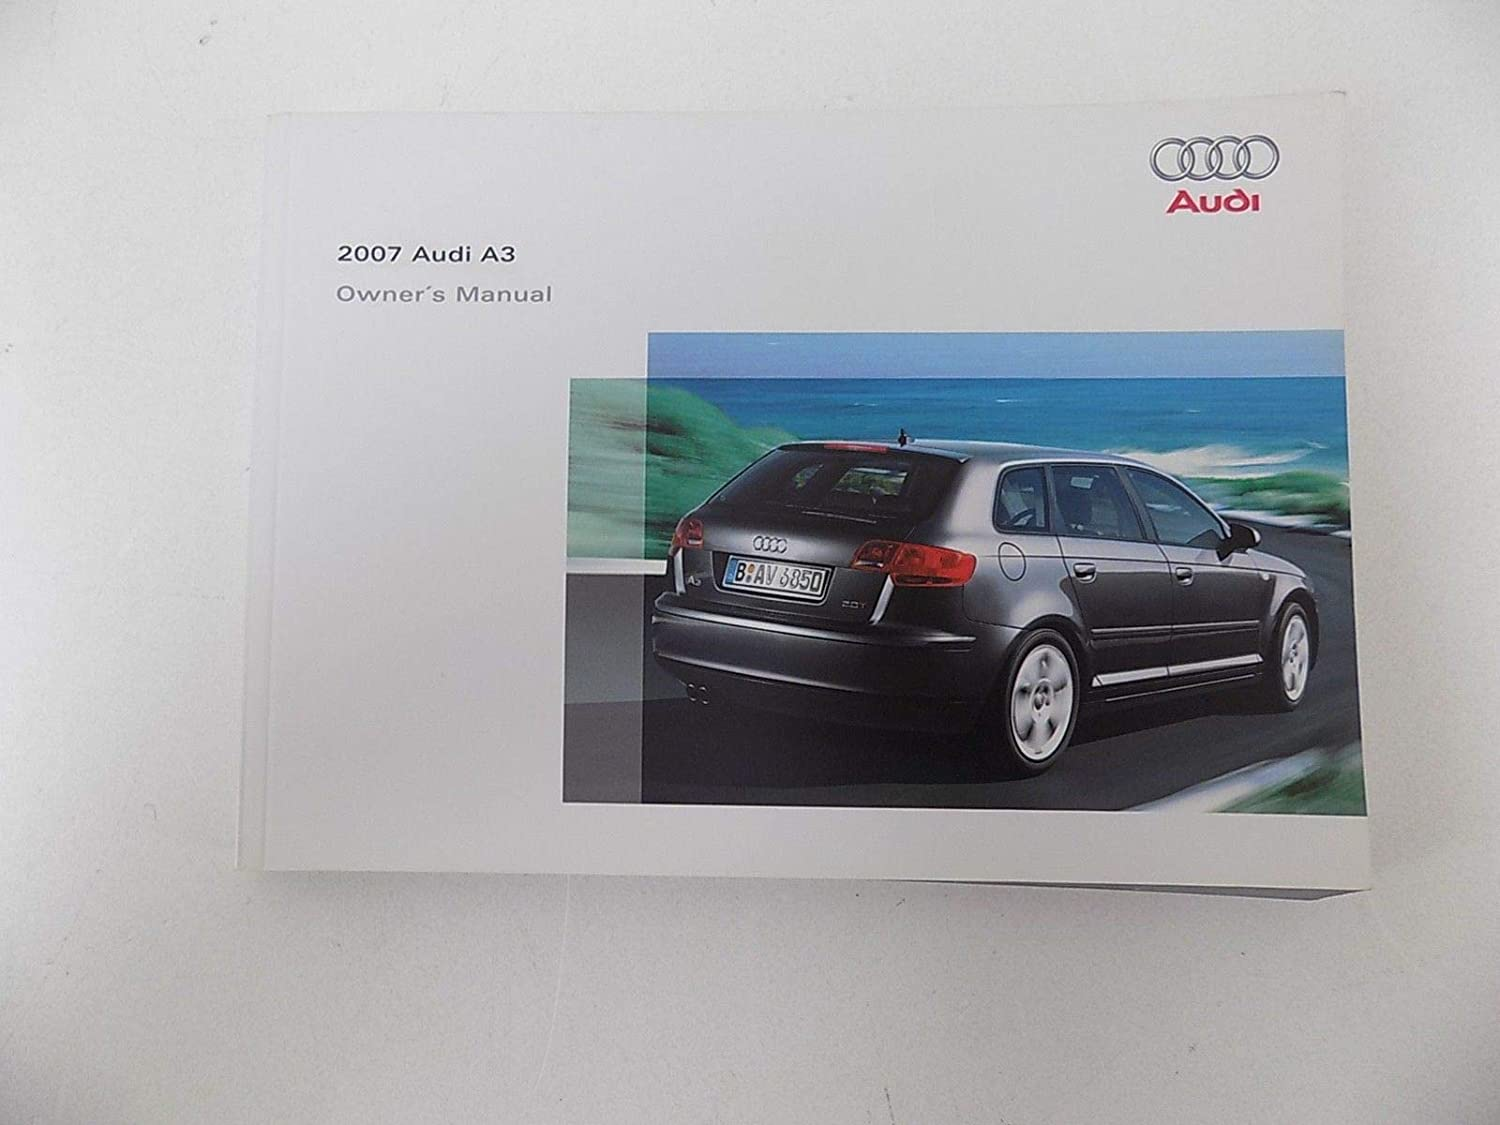 Amazon.com: Owners Manual with Case 2.0L Turbo Audi A3 2007 07: Electronics